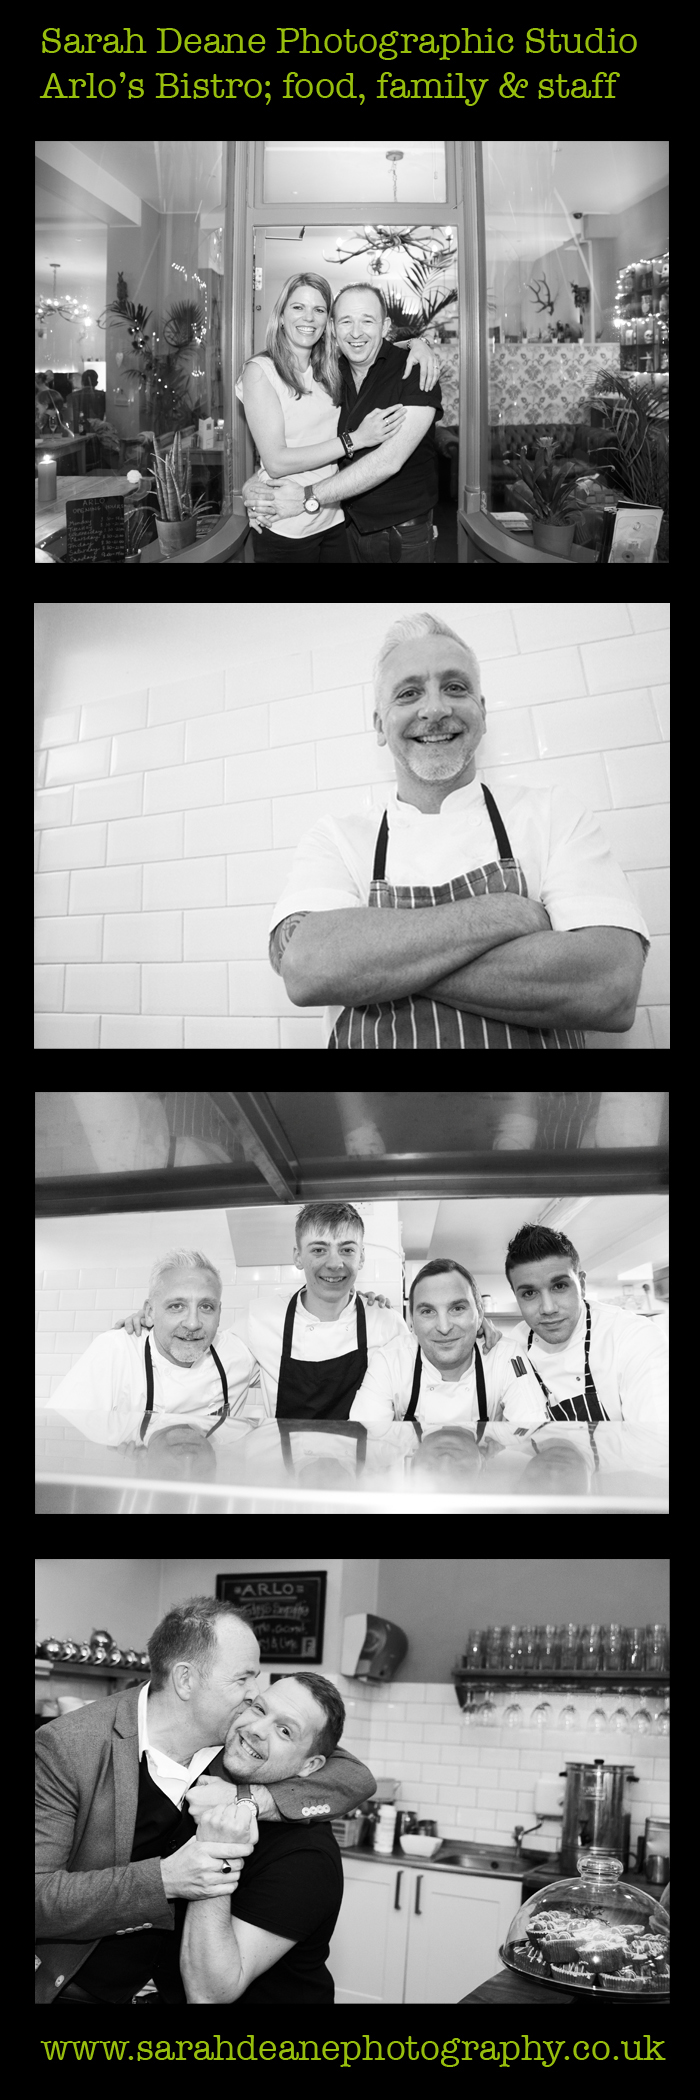 arlo's staff portrait photography in jesmond bistro newcastle